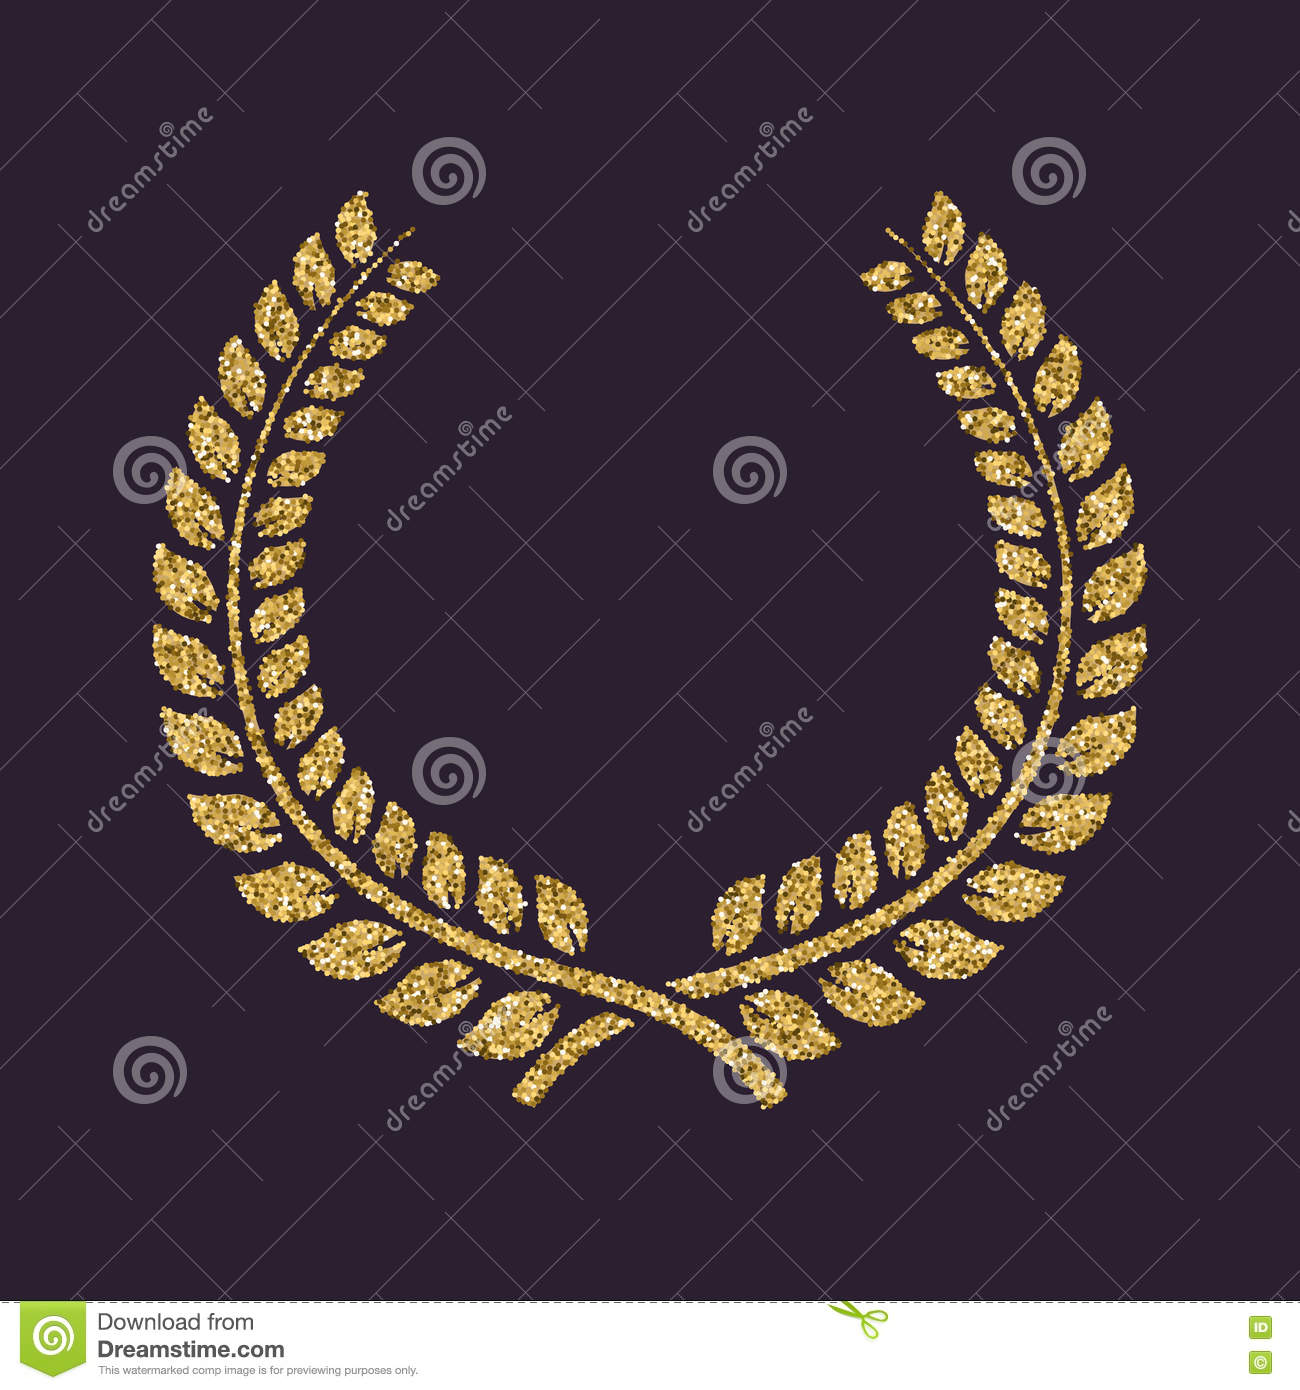 The Laurel Wreath Icon Prize And Reward Honors Symbol Gold